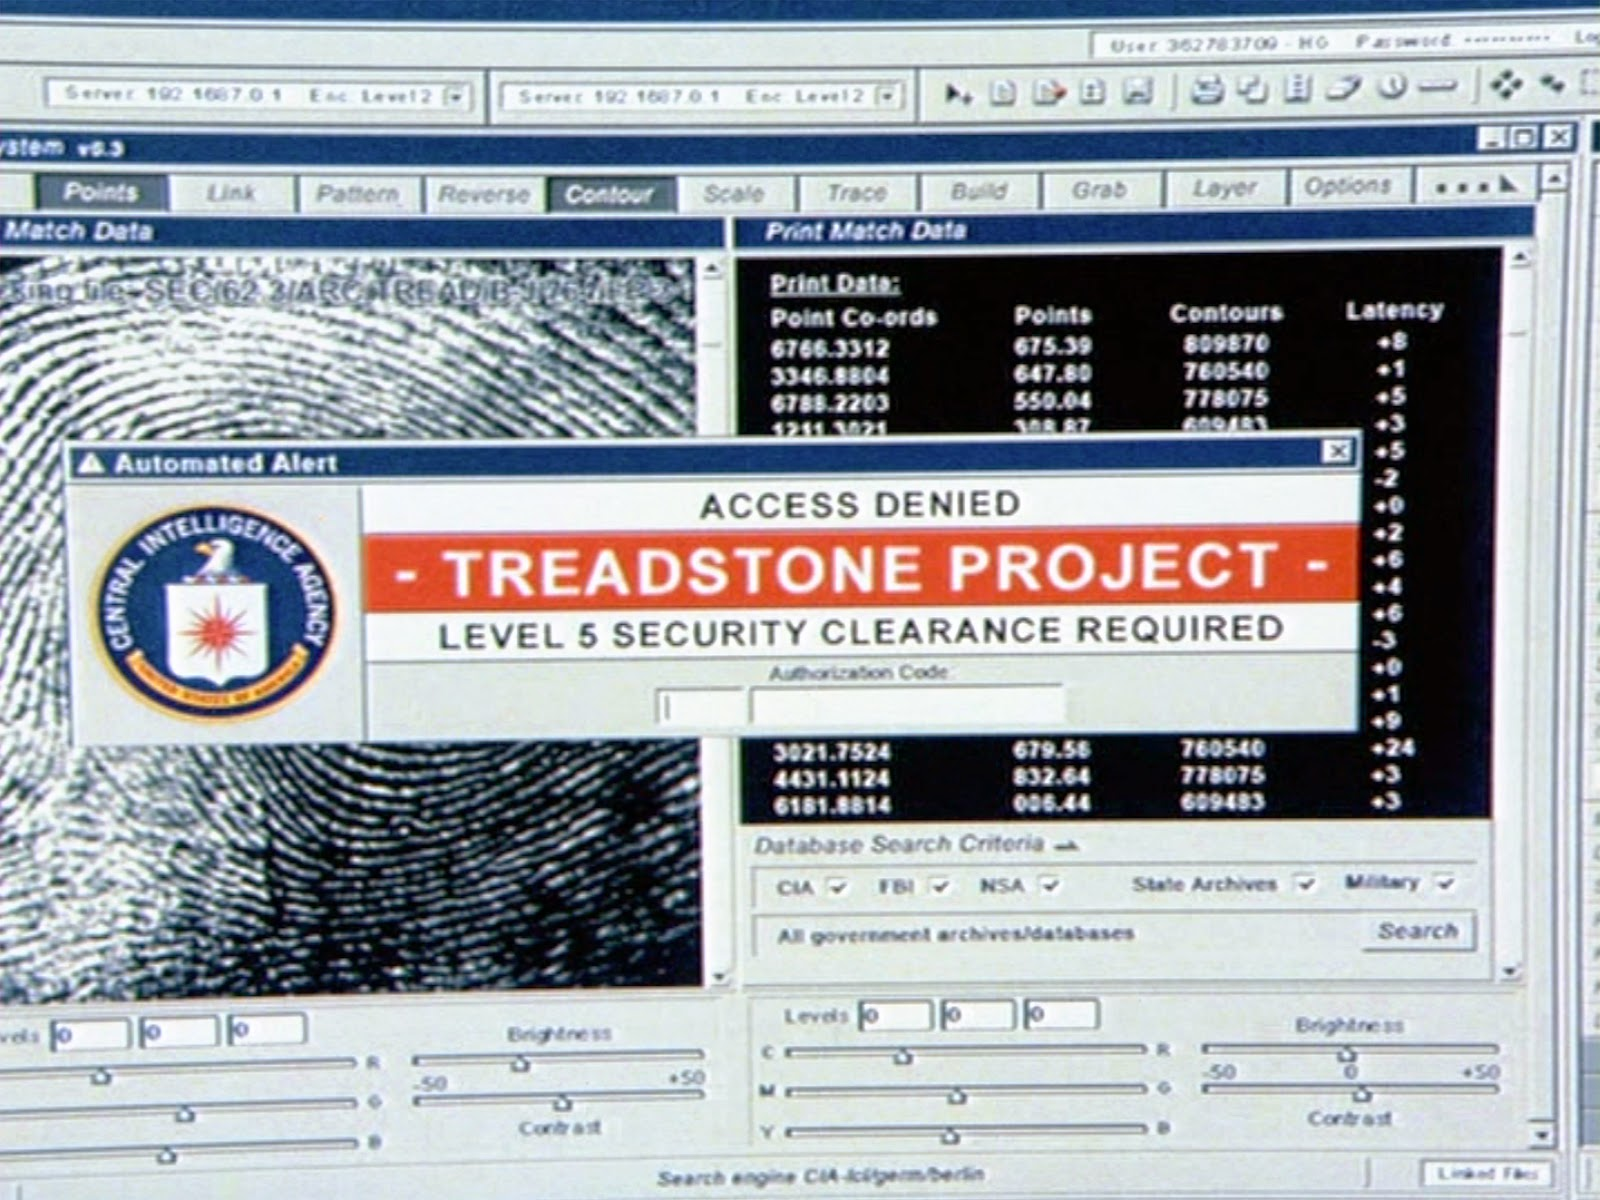 nsa capstone project Project management type lan the senior capstone cool nsa nt2799 capstone itt tech france page 1 visite hero nbspnbsp155nbspschoolshere is the best cam for homework.